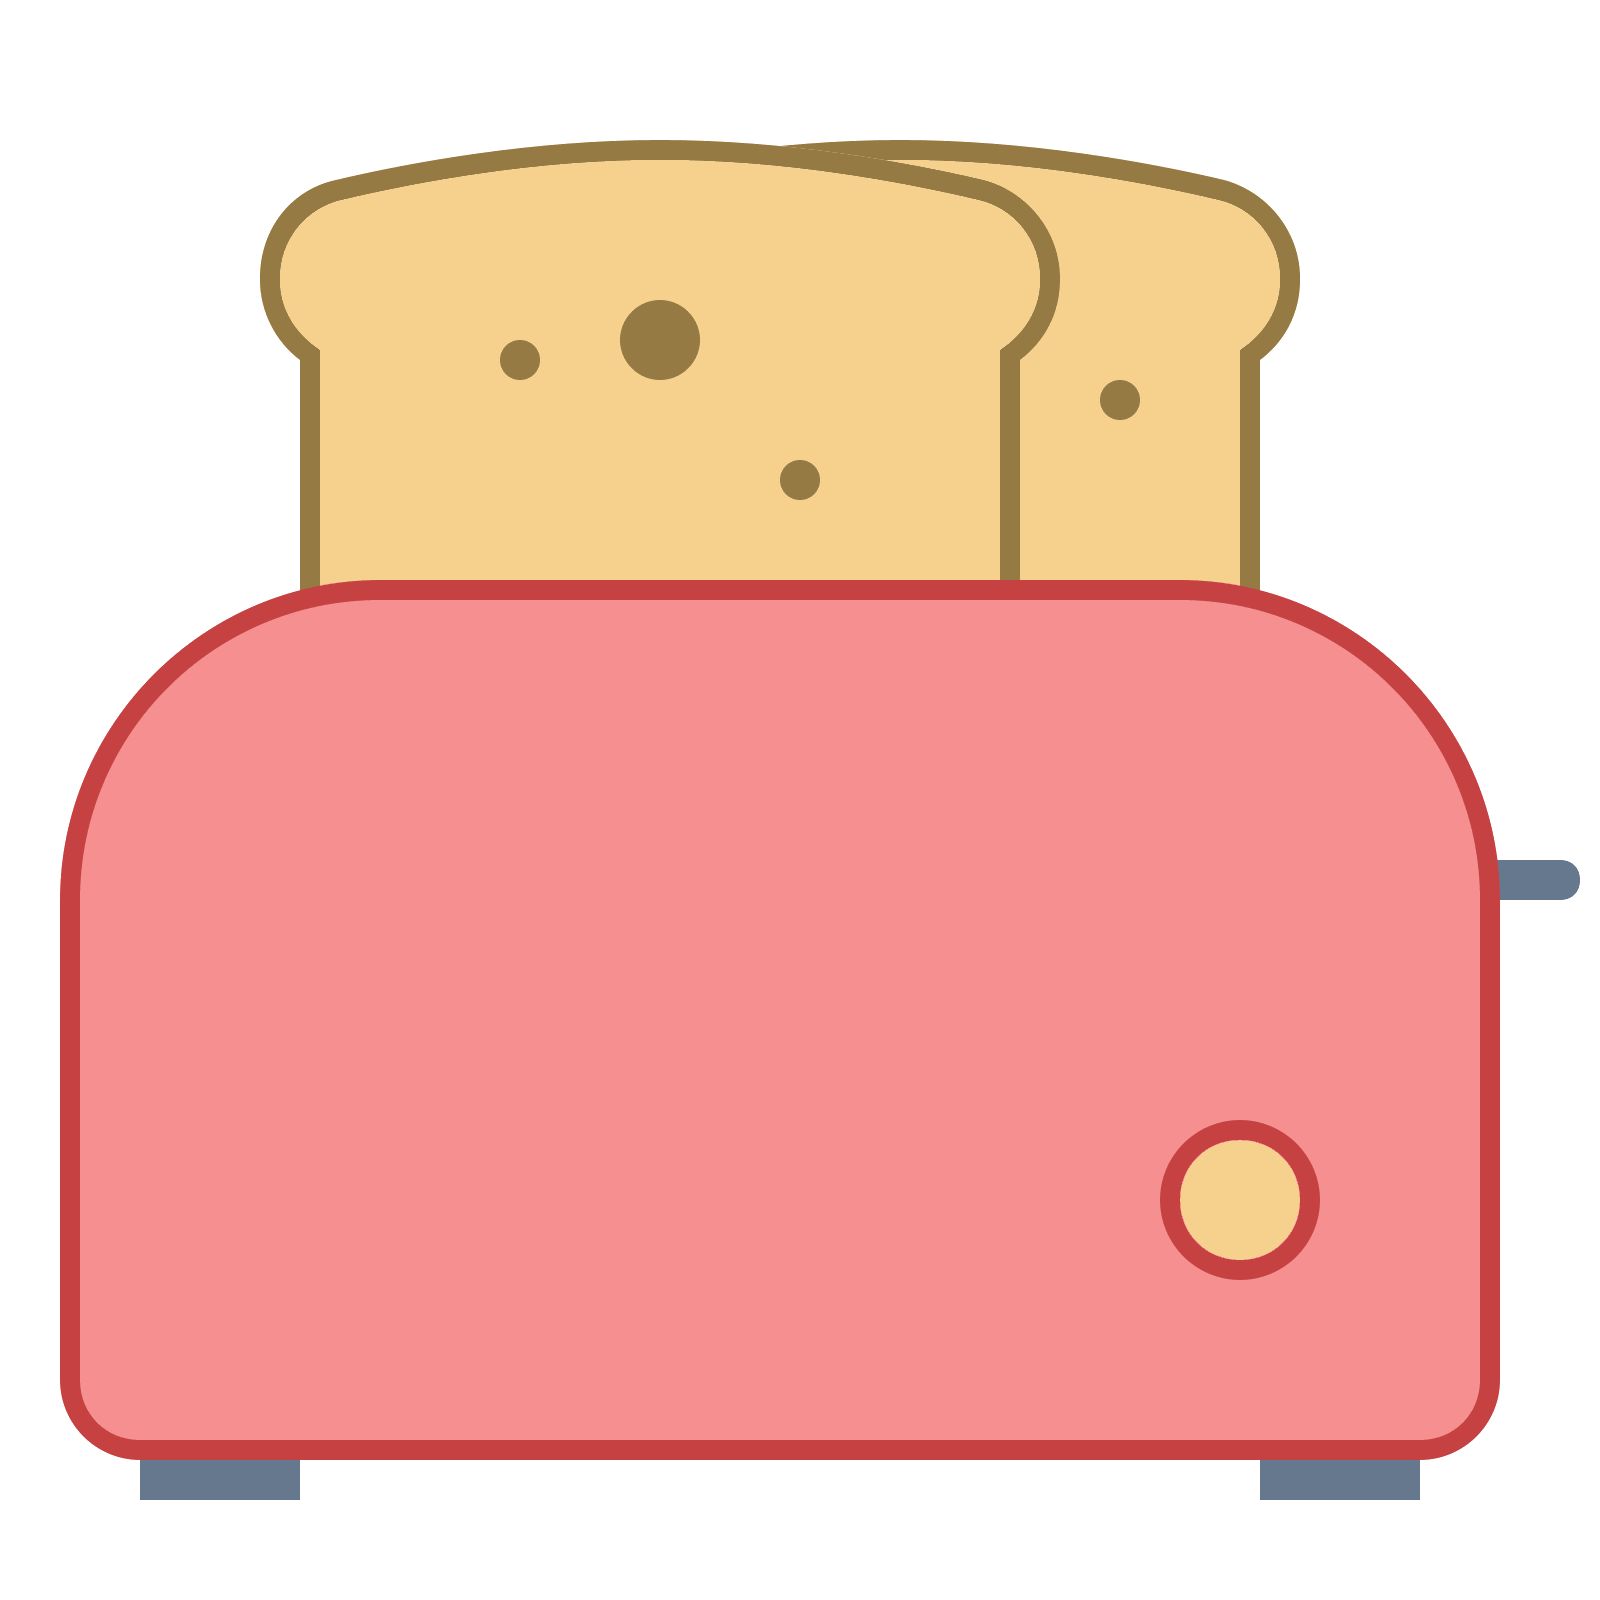 clip freeuse download Toaster clipart smiley face. Icona download gratuito png